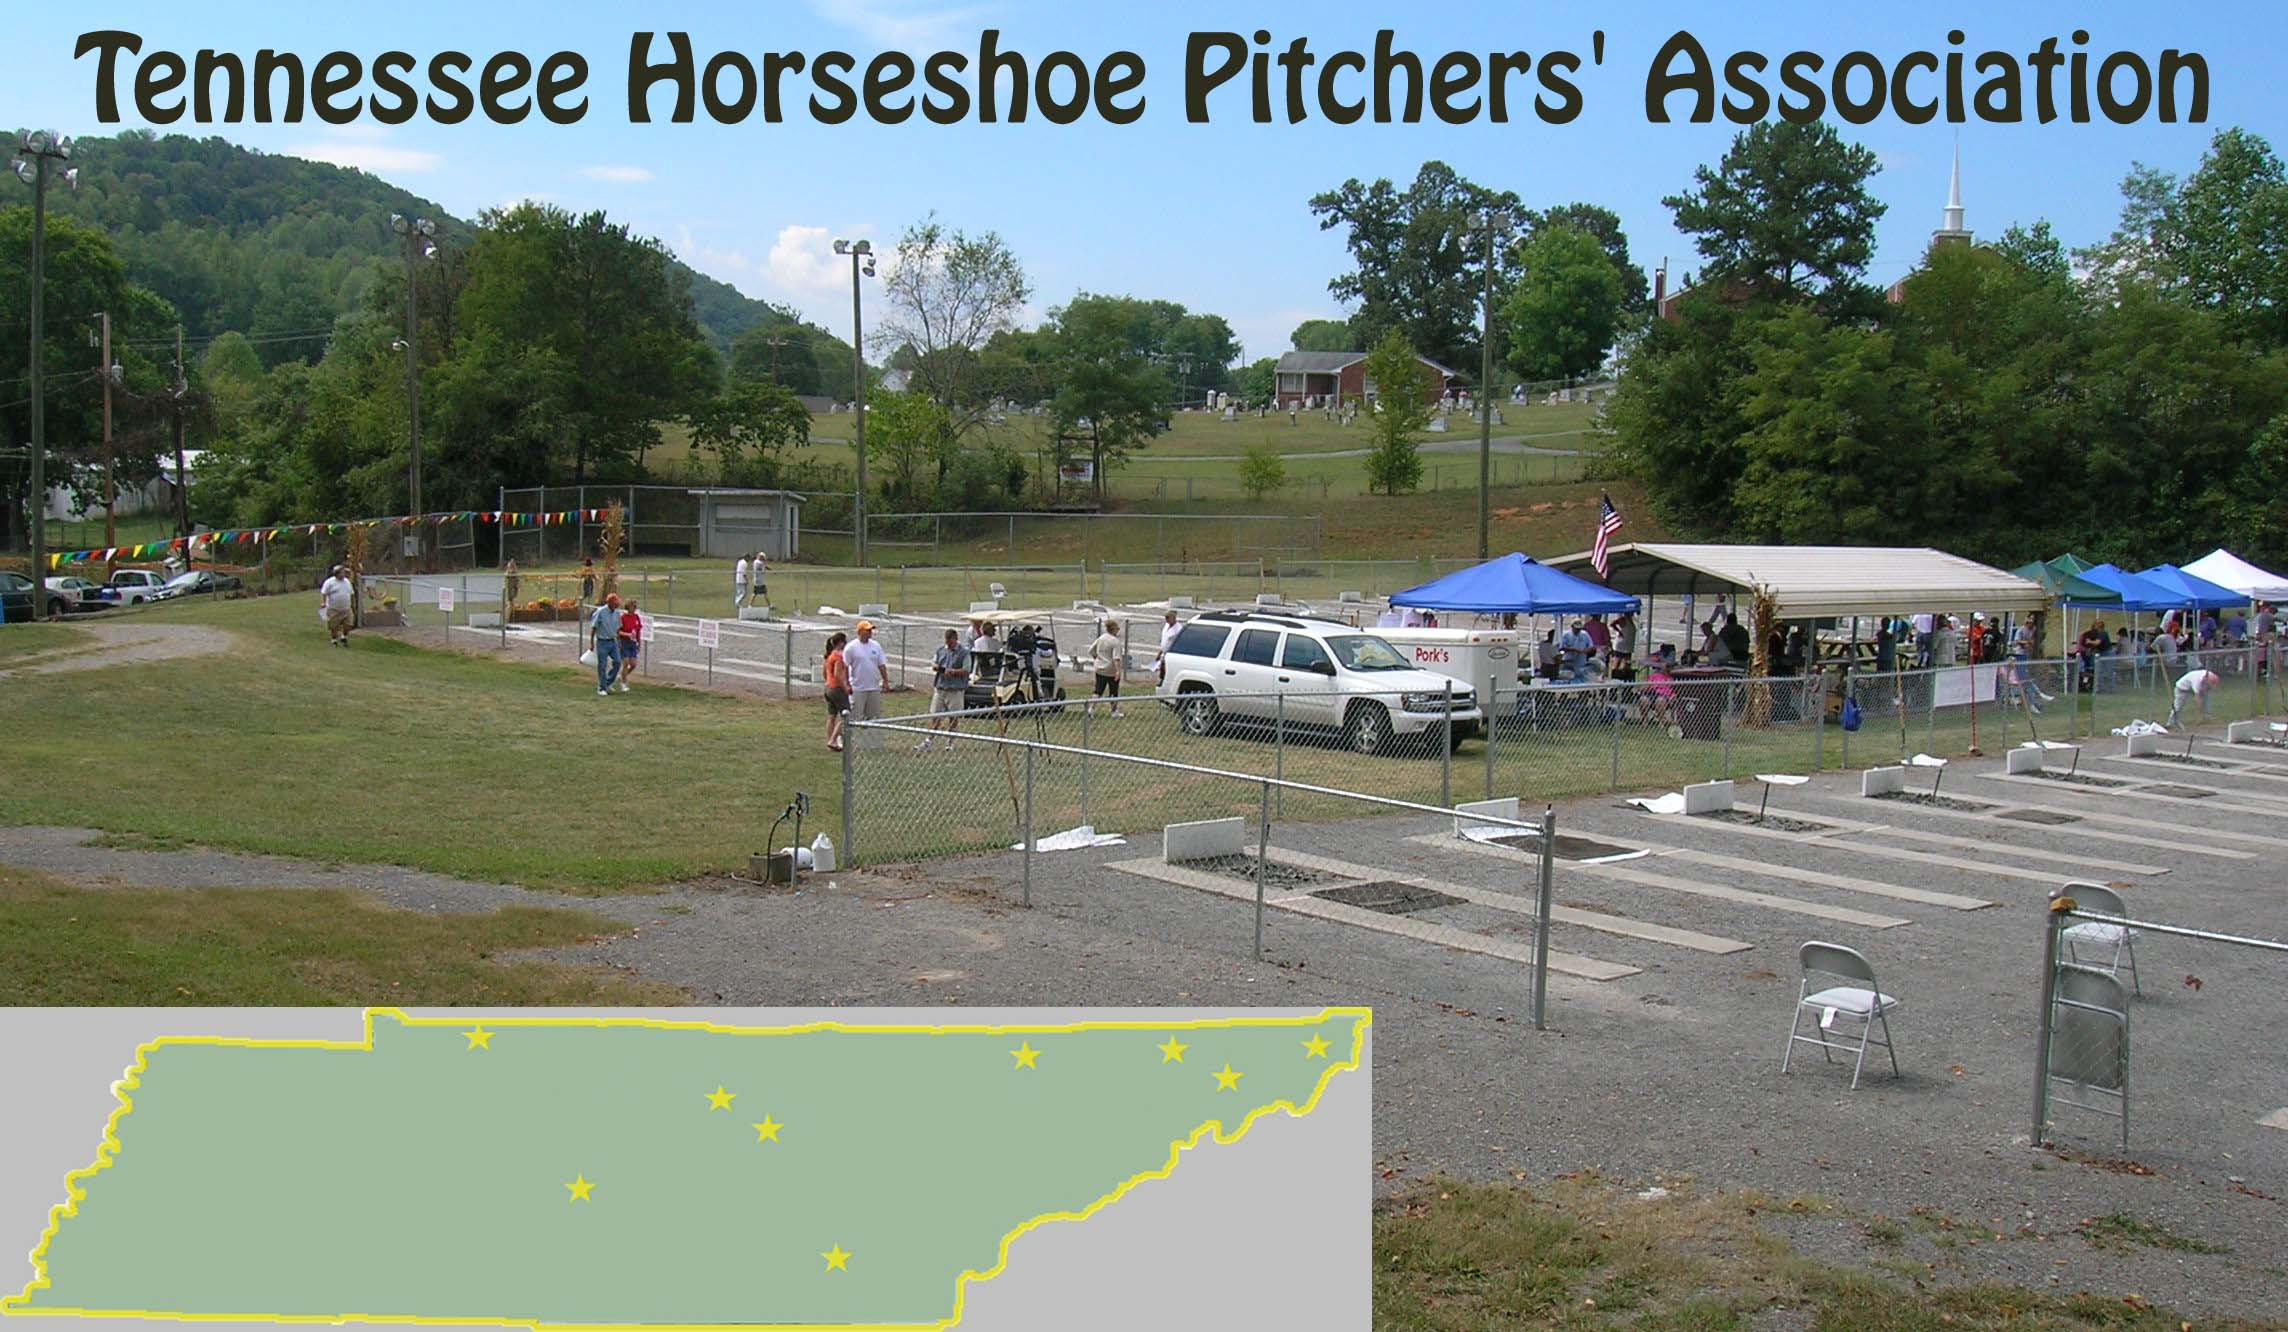 Tennessee Horseshoe Pitchers Association